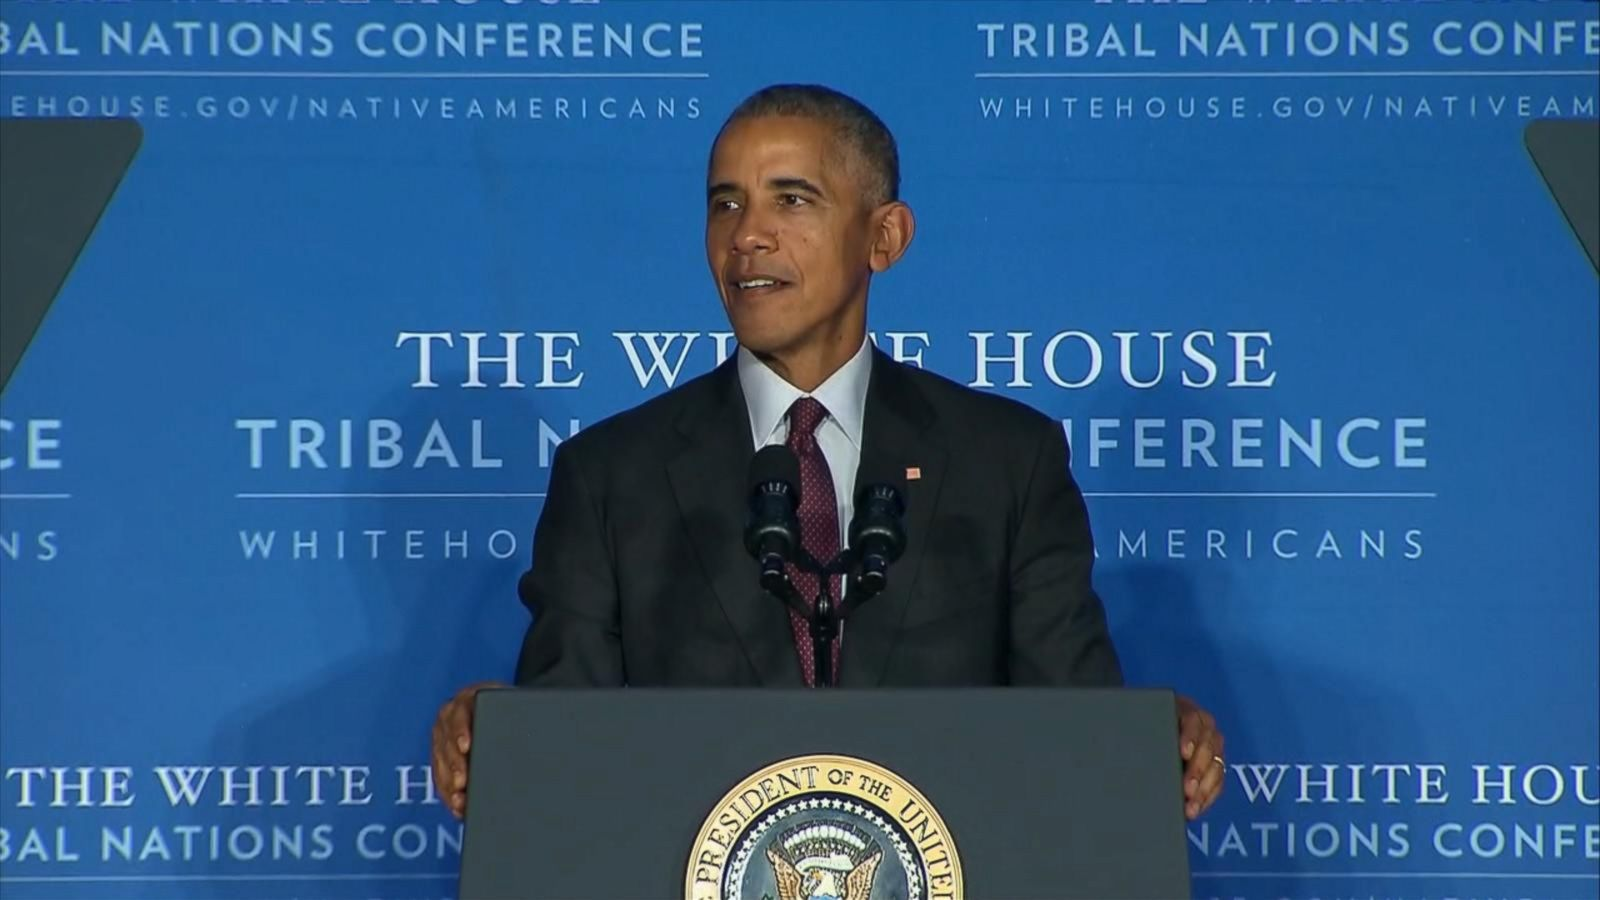 Obama weighs in on Dakota Access pipeline protest at Tribal Nations conference.